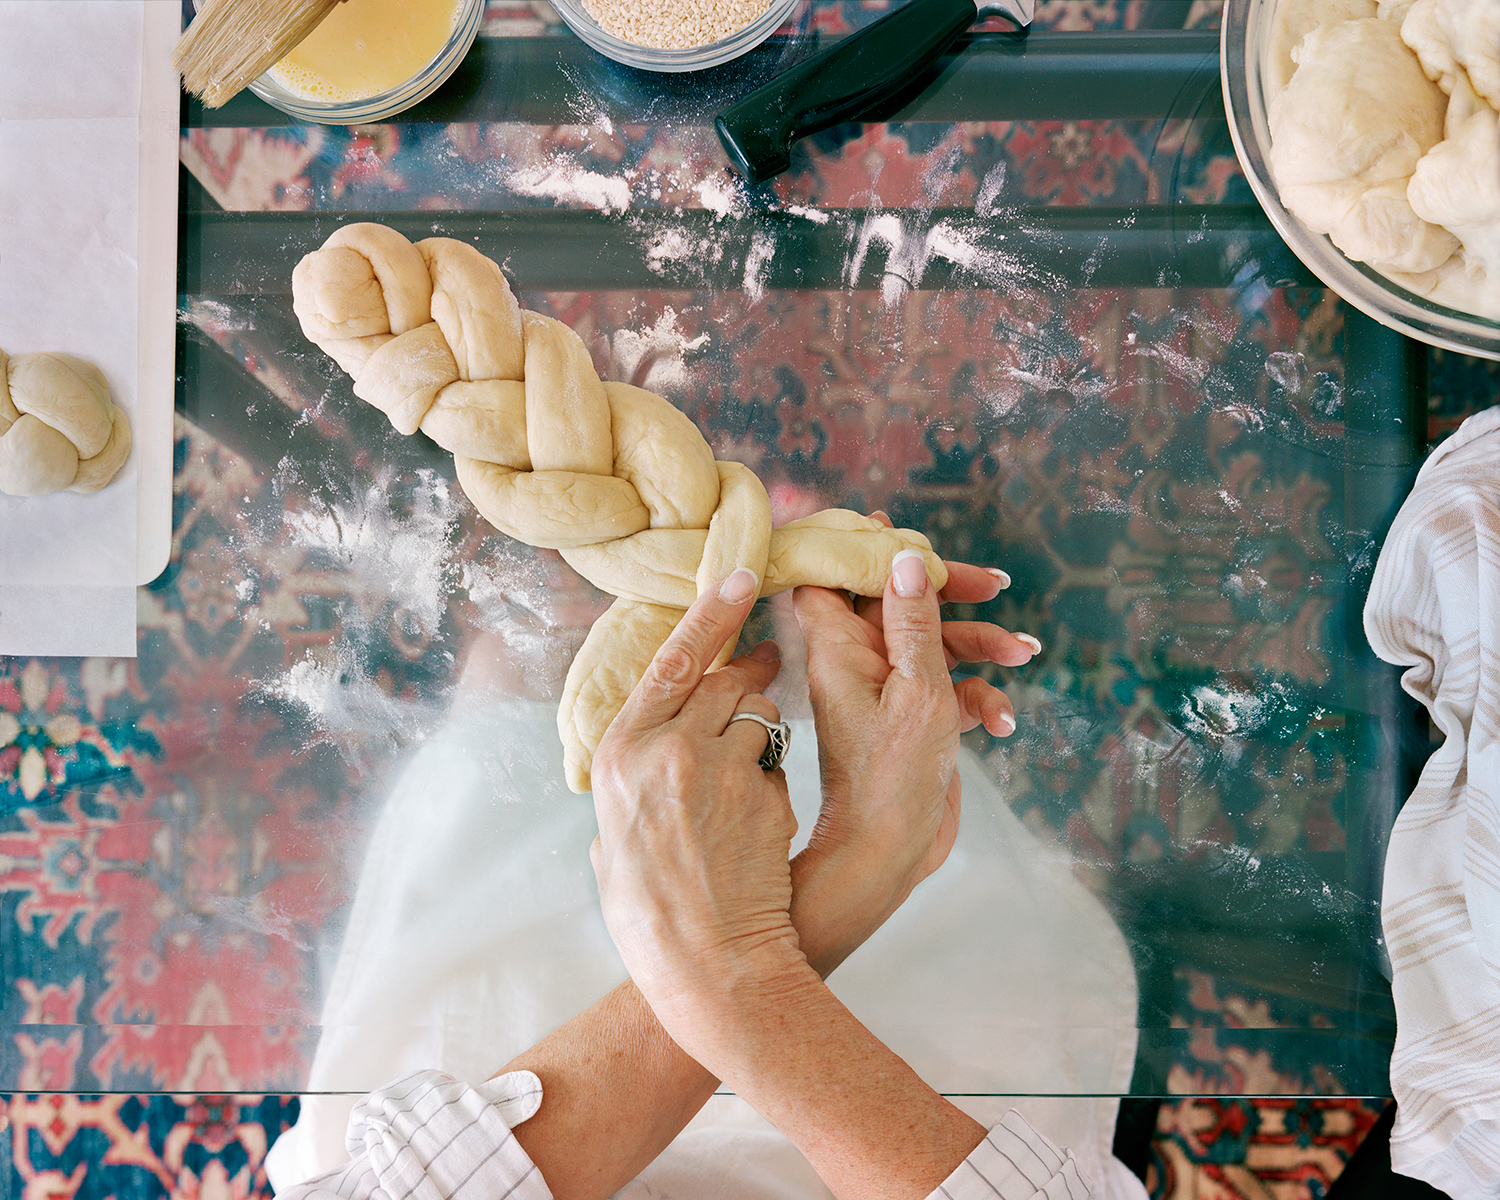 Braided Bread, 2014